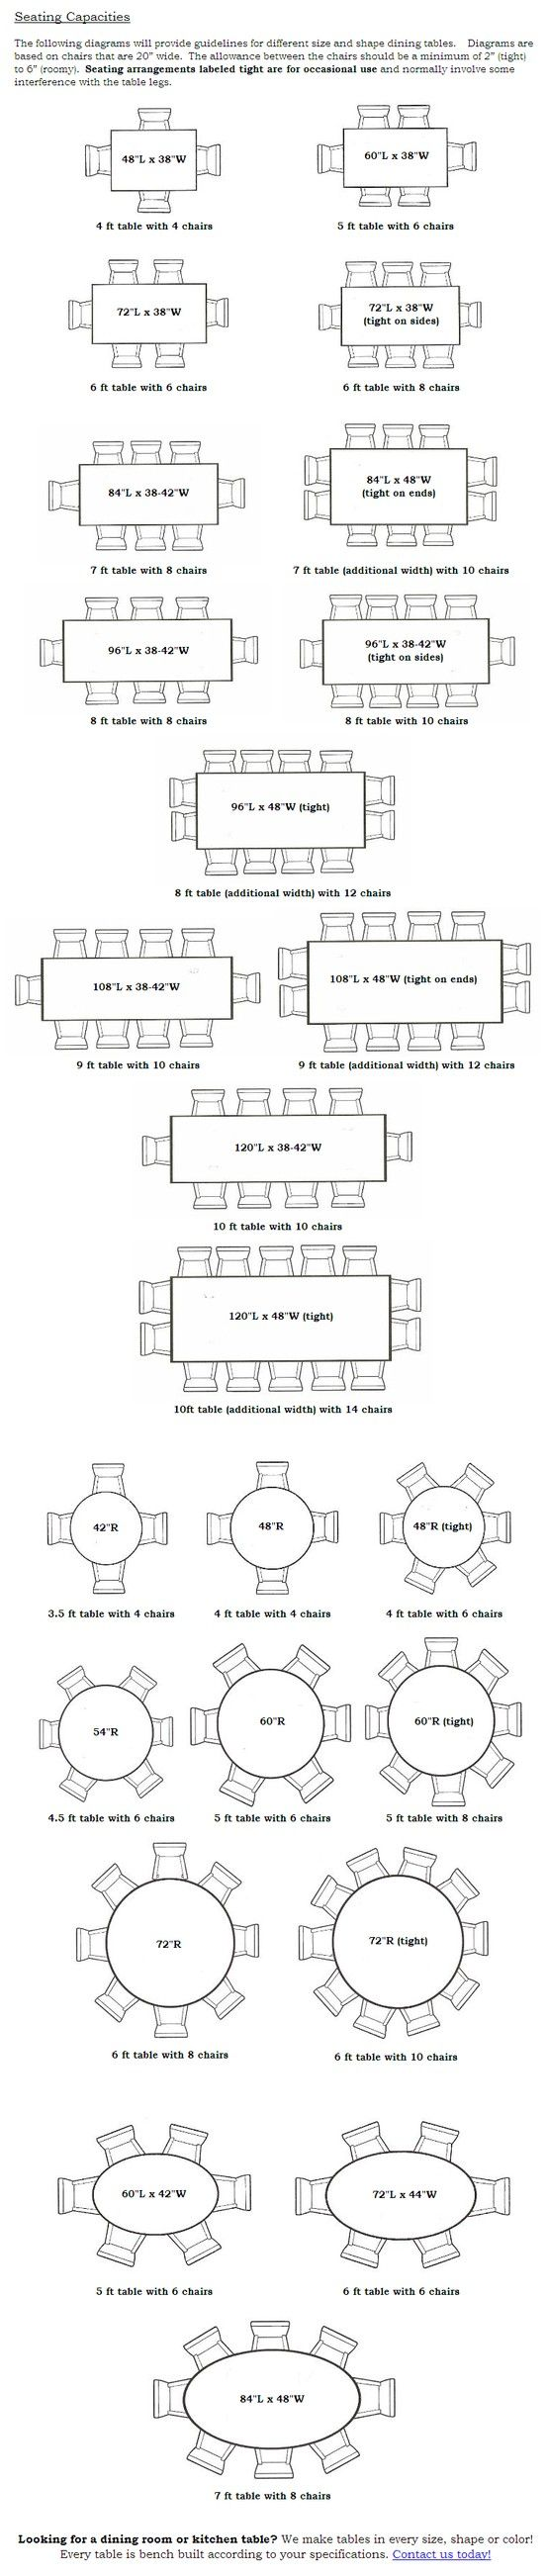 Dining Table seating capacities chart by size and shape. Great reference guide.